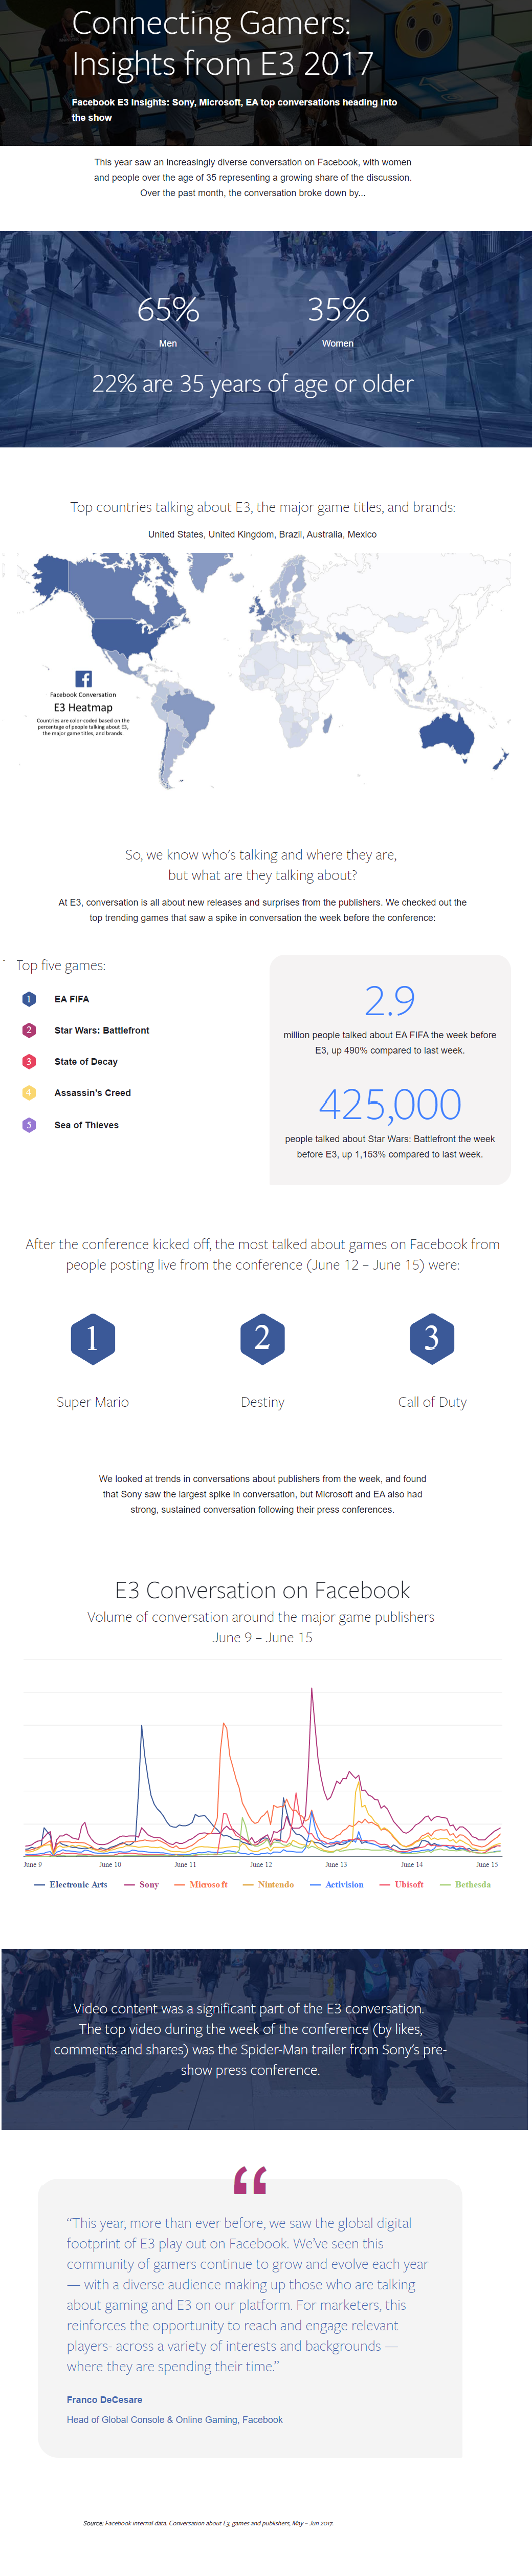 Facebook Releases New Data on E3 and Gaming Related Discussion on the Platform [Infographic] | Social Media Today